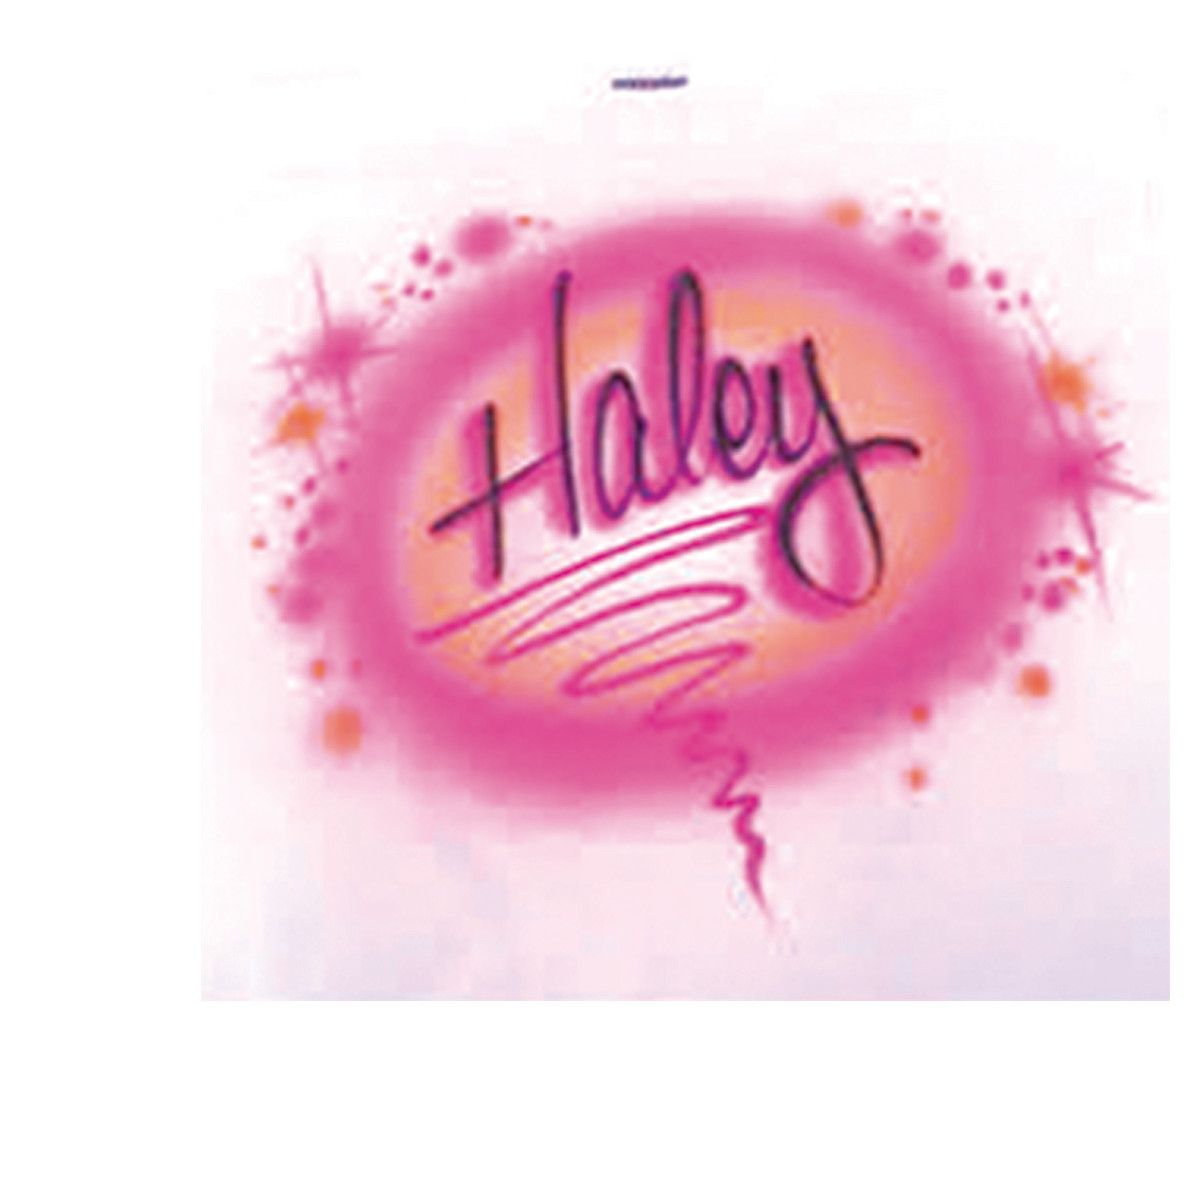 Haley Name 9